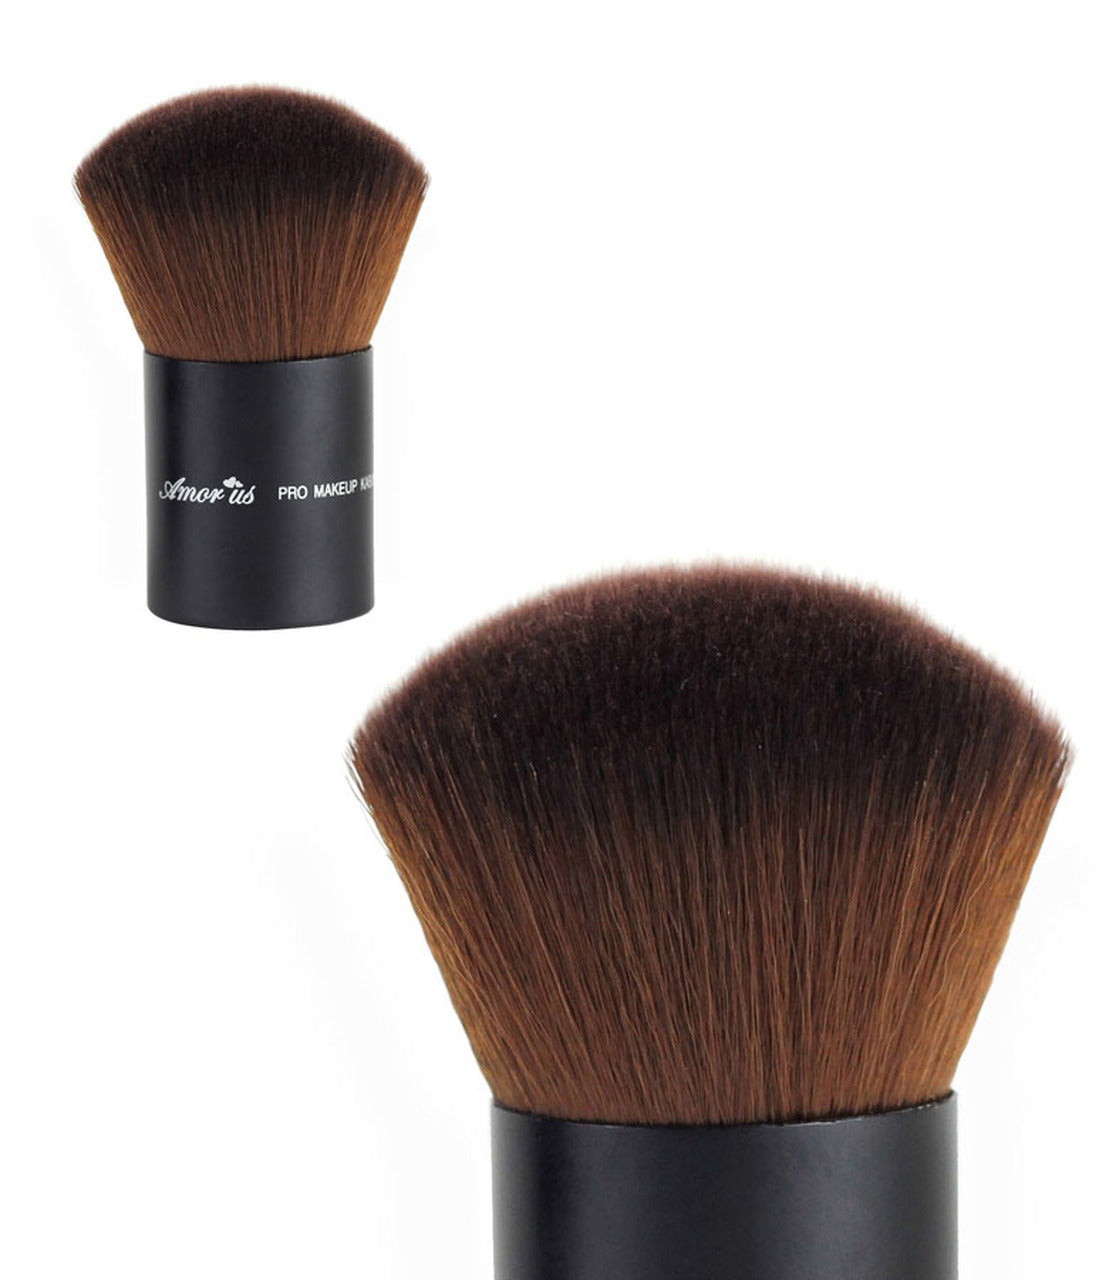 AM-BR918 : Professional Deluxe Face & Body Brush 1 DZ